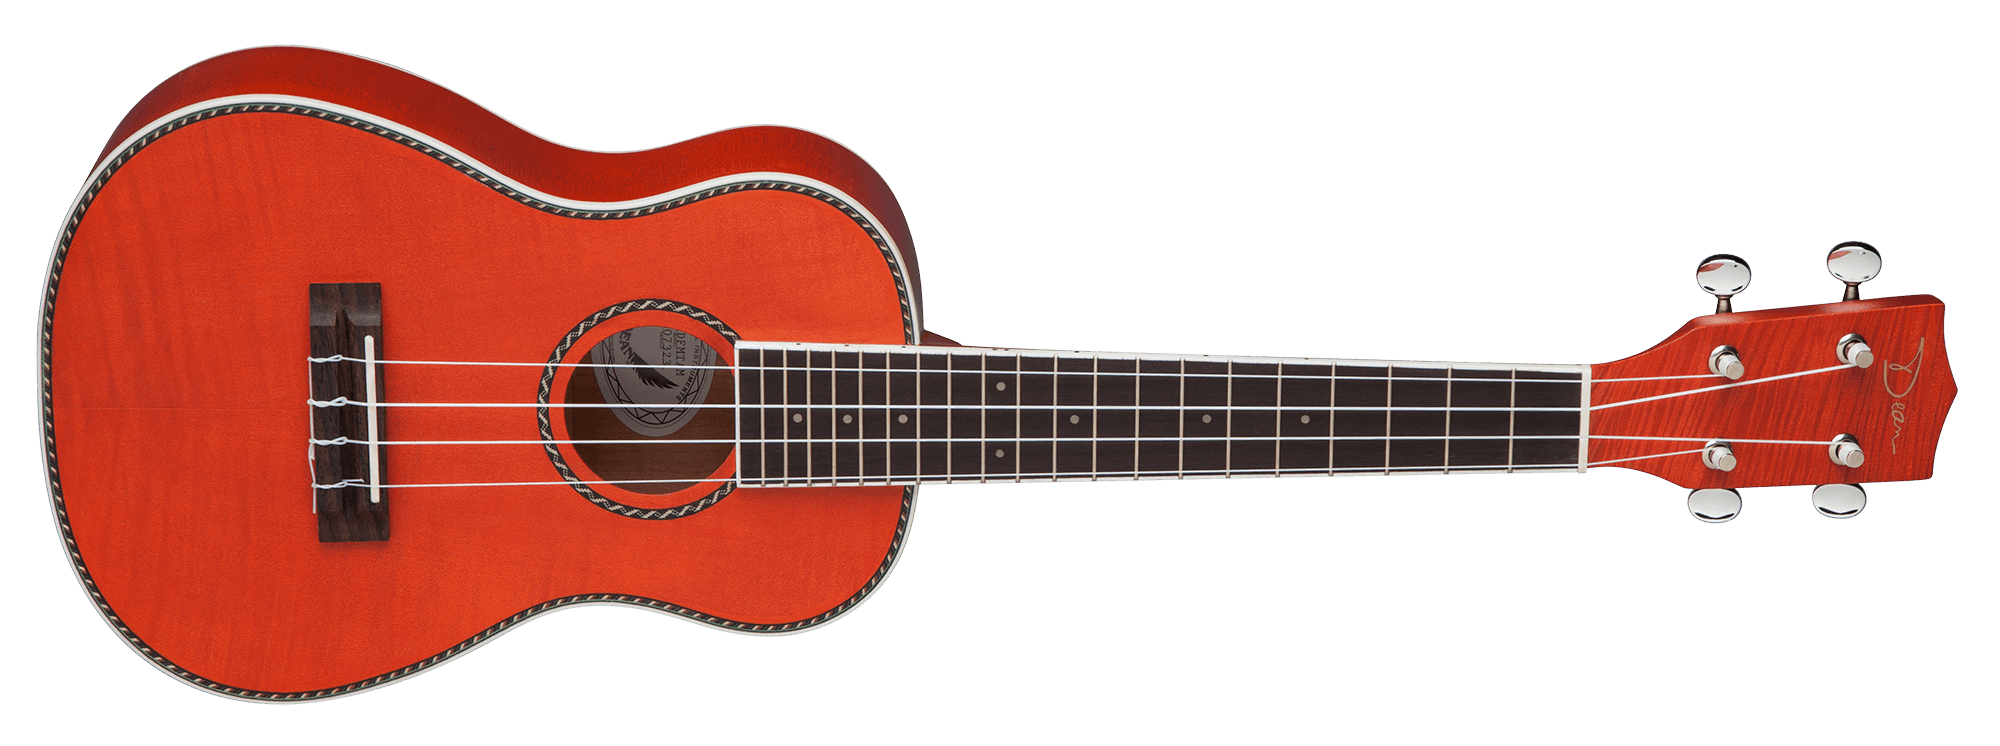 Ukulele concert flame maple. Clipart guitar classical guitar